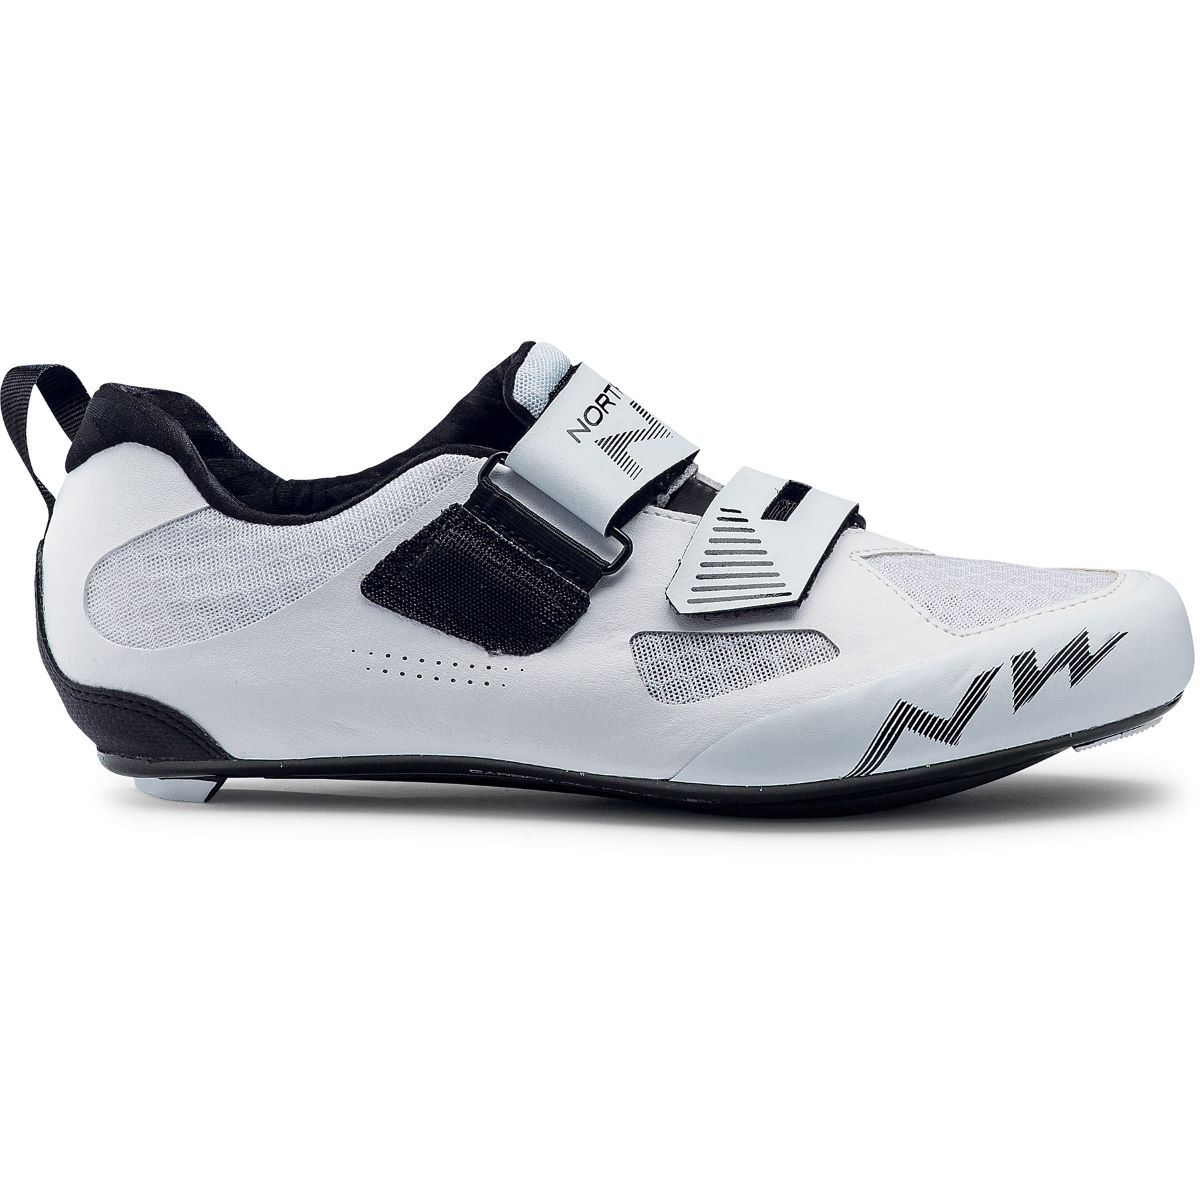 Northwave Northwave Tribute 2 Triathlon Shoes   Cycling Shoes